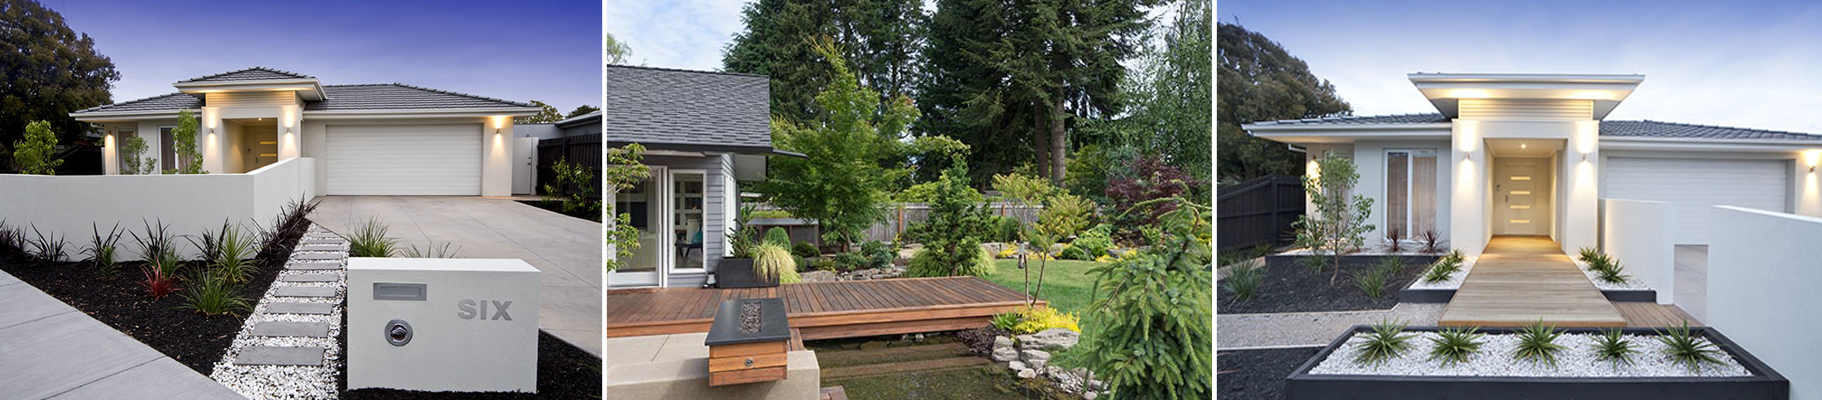 hallmark homes landscaping footer image - Landscaping - It's Integral to Outdoor Liveability